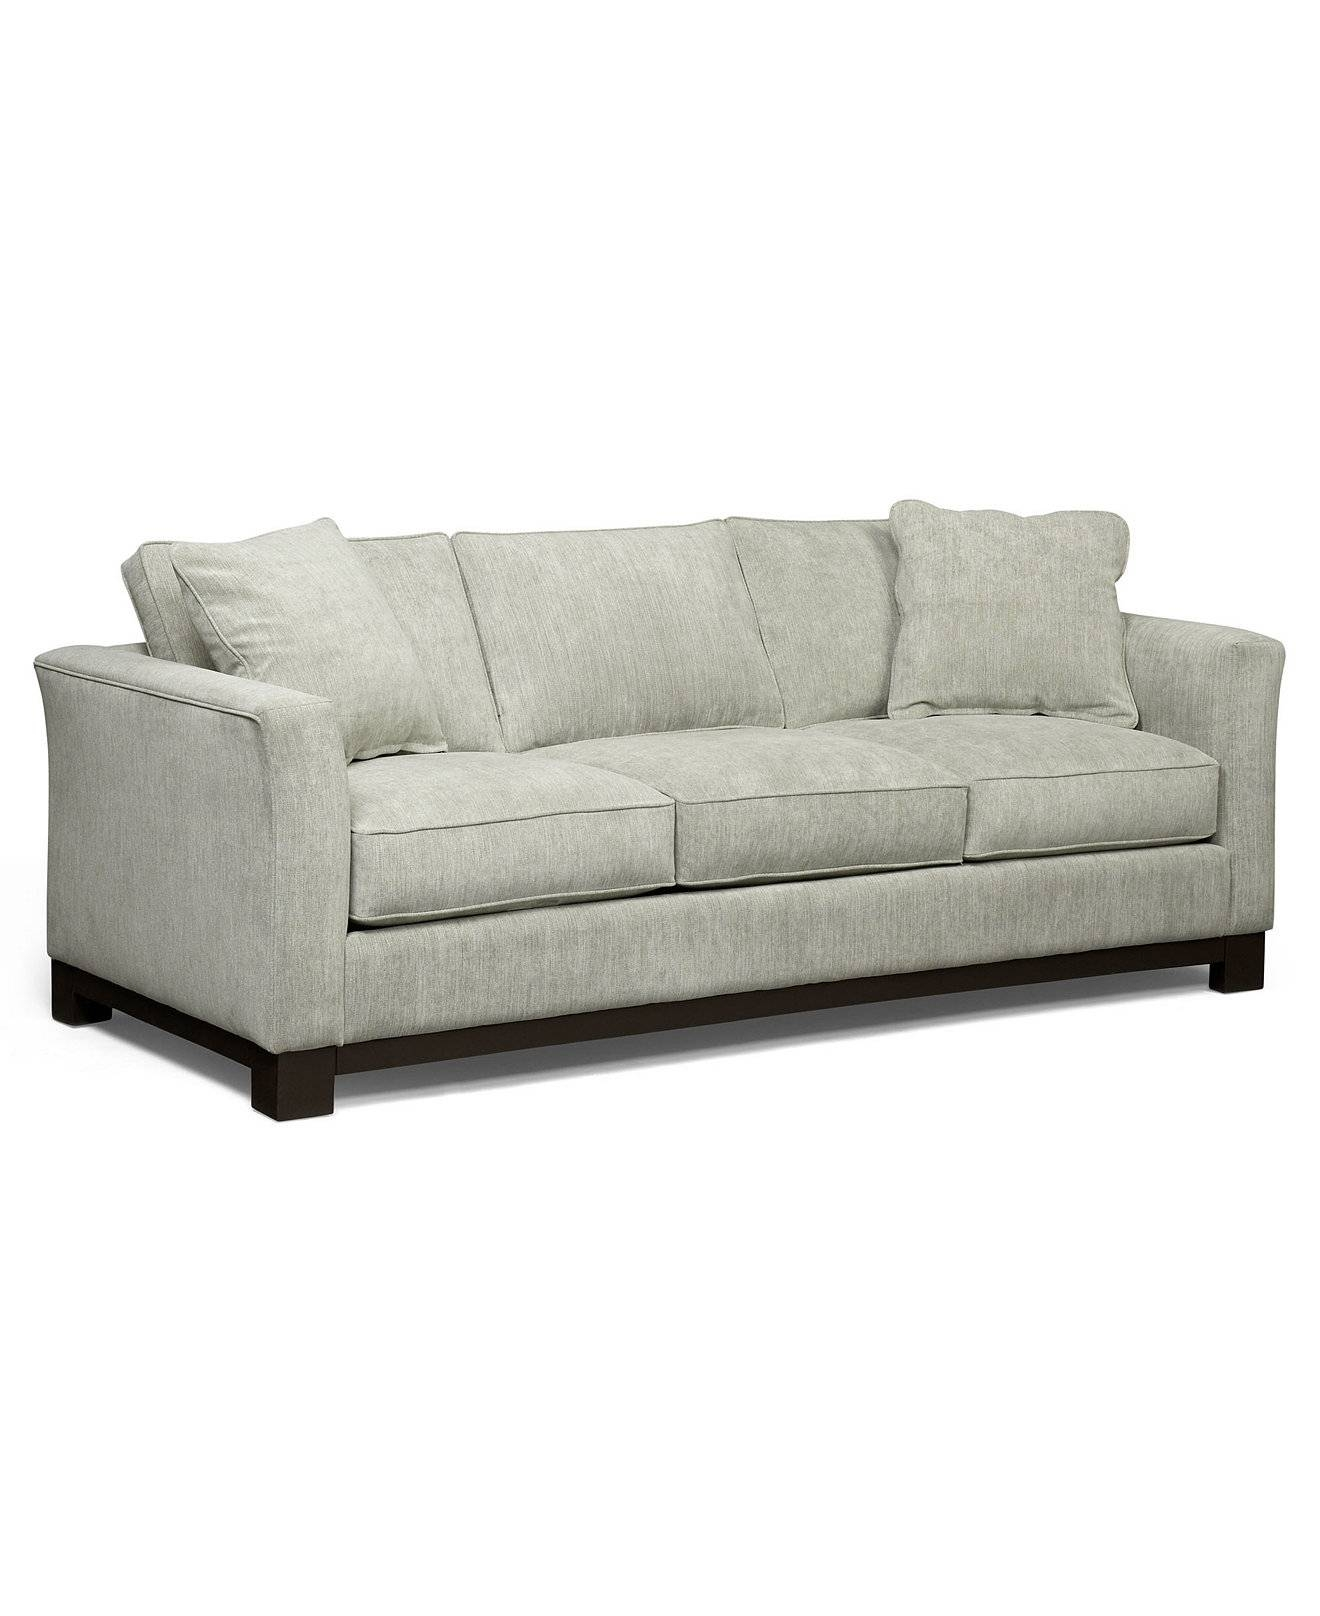 Sofas Center : Kenton Fabric Sofa Furniture And Couch Imposing within Macys Sofas (Image 21 of 25)